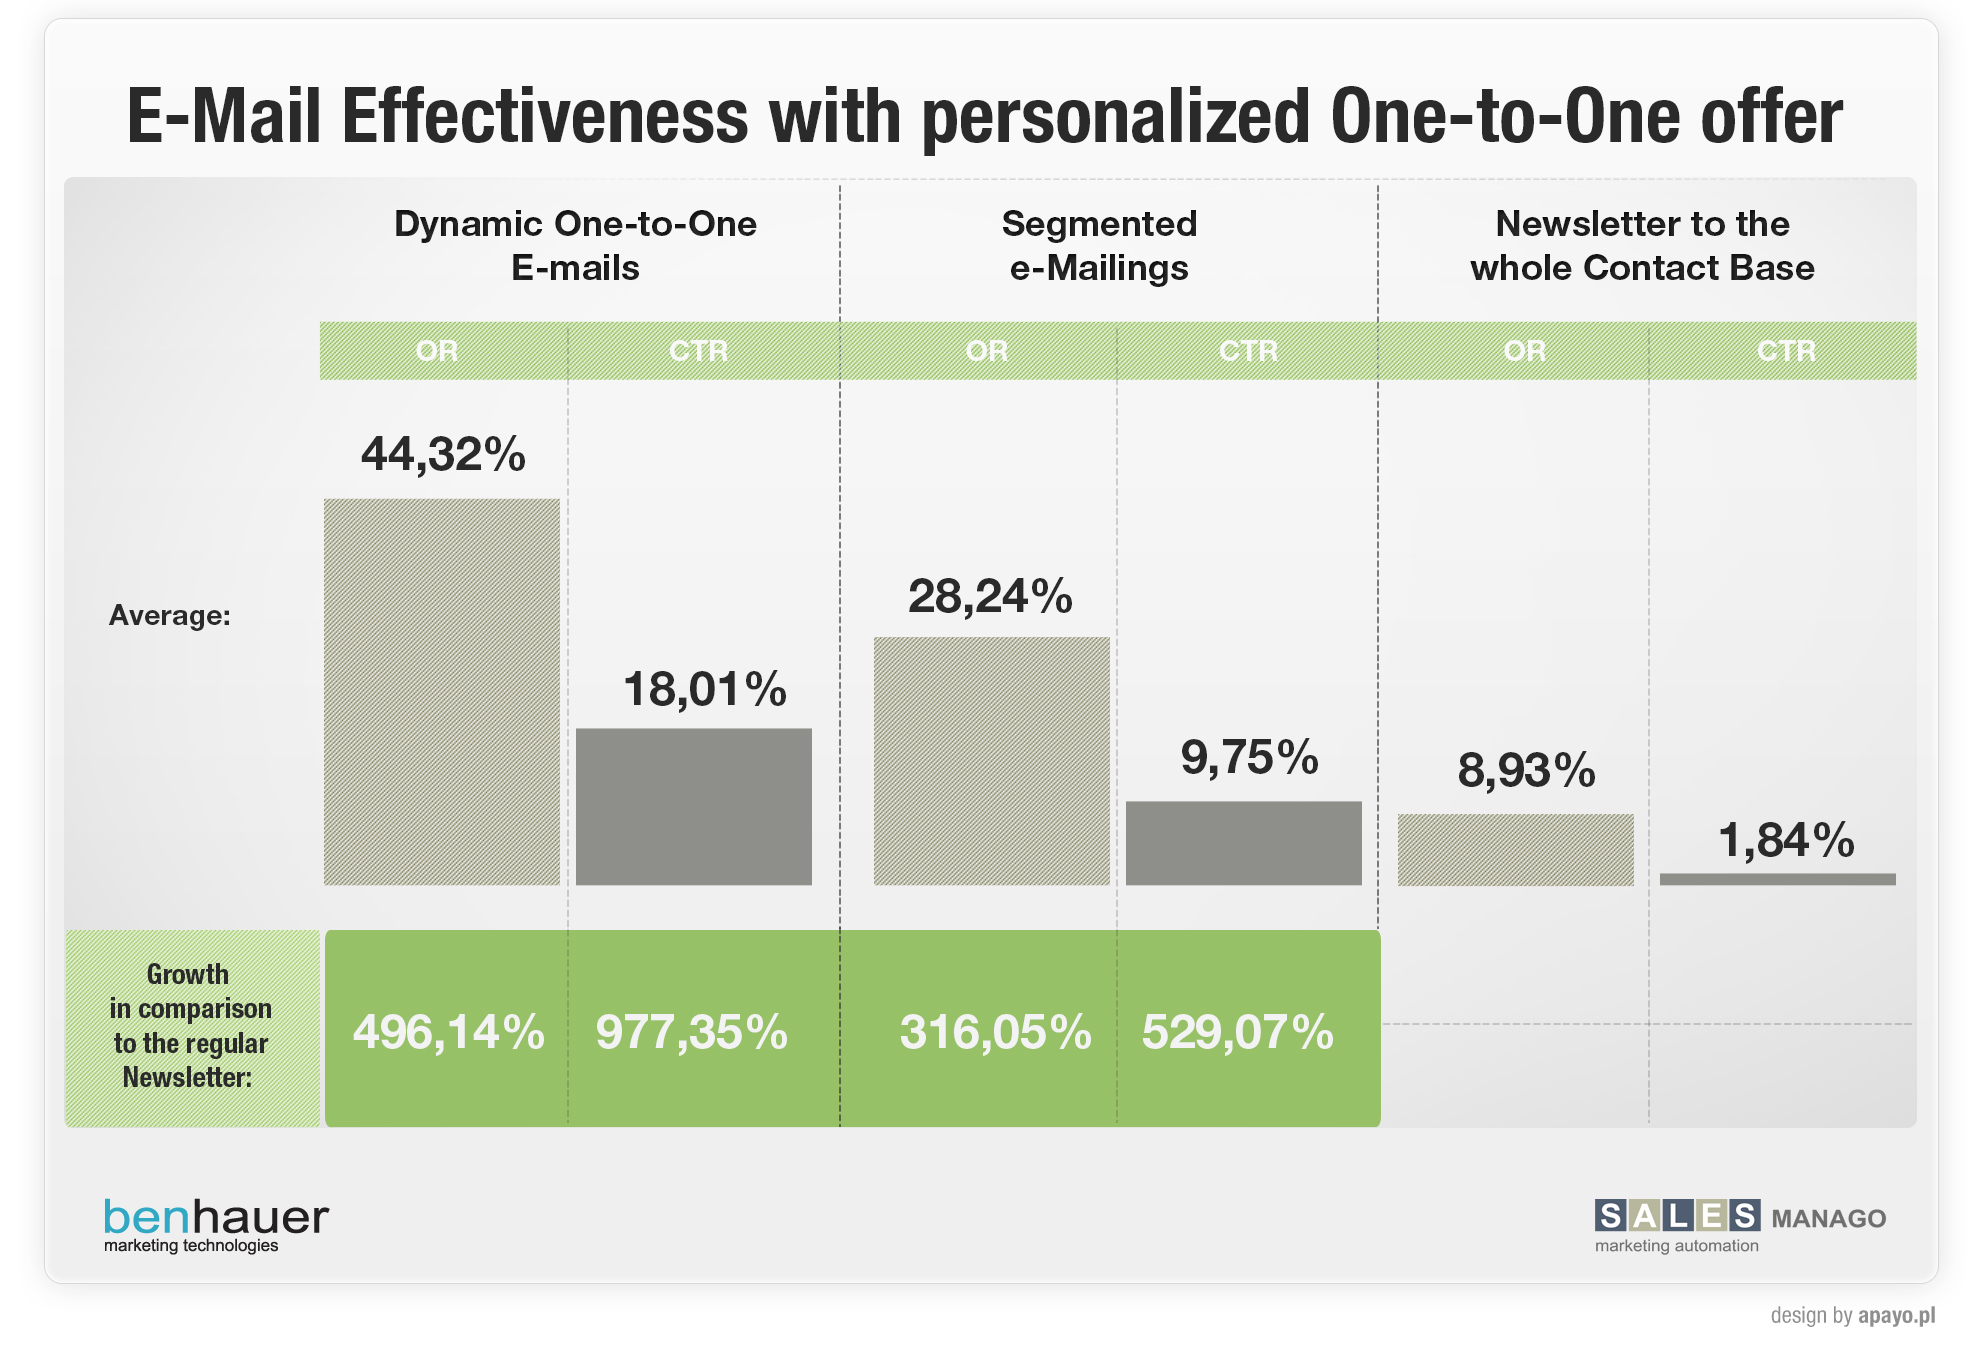 Personalized e-Mails effectiveness